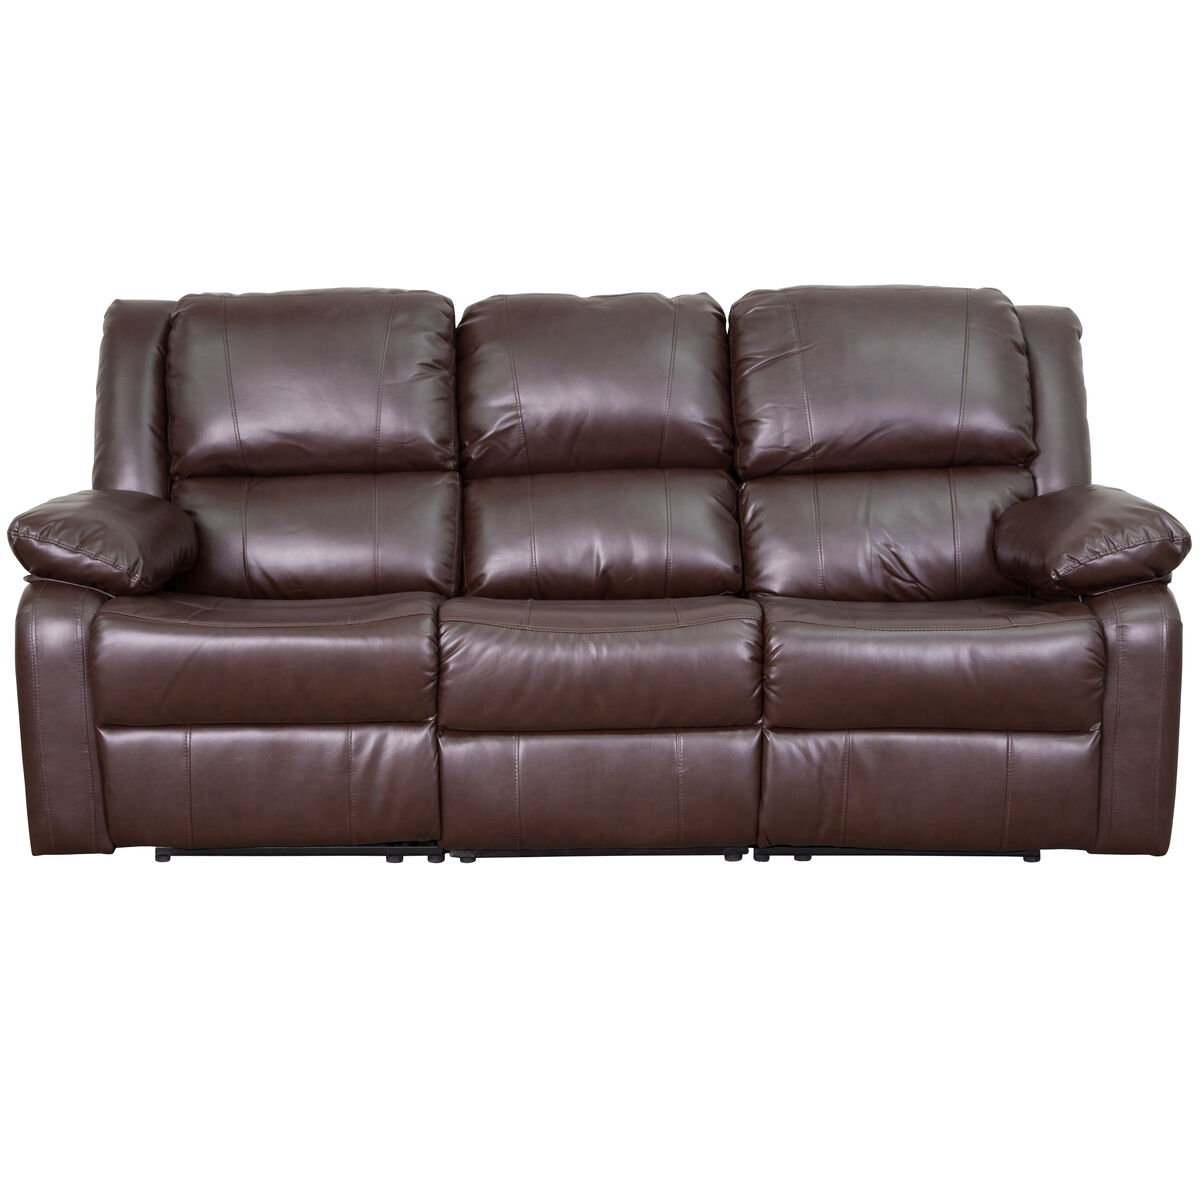 Brown Leather Recliner Sofa BT-70597-SOF-BN-GG | Bizchair.com